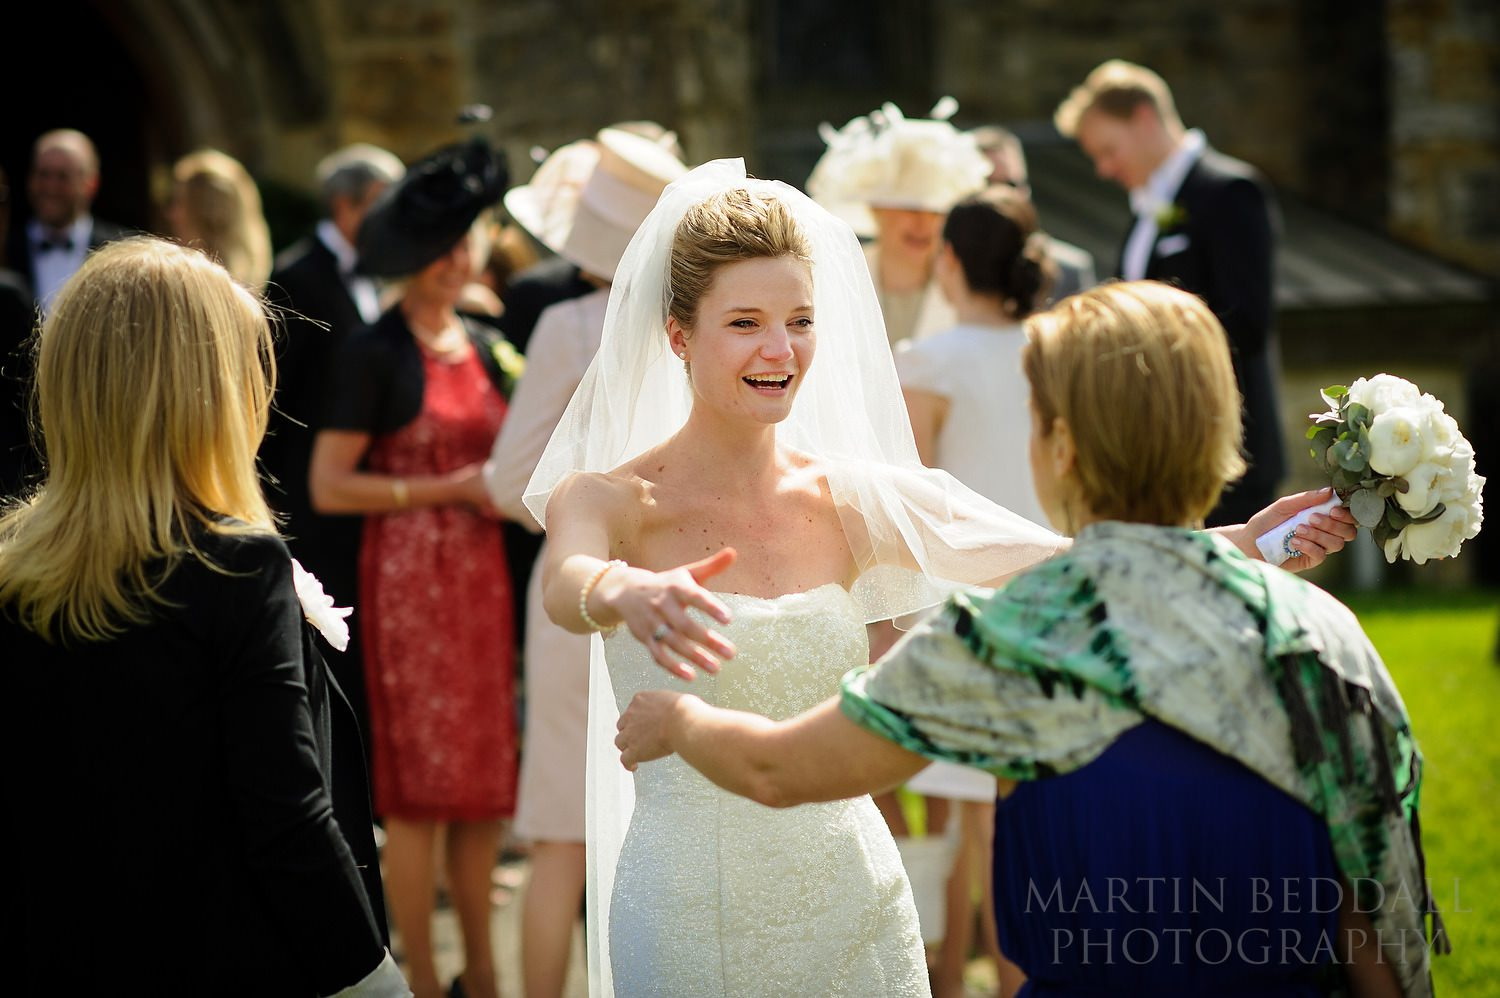 Bride greets friend with open arms